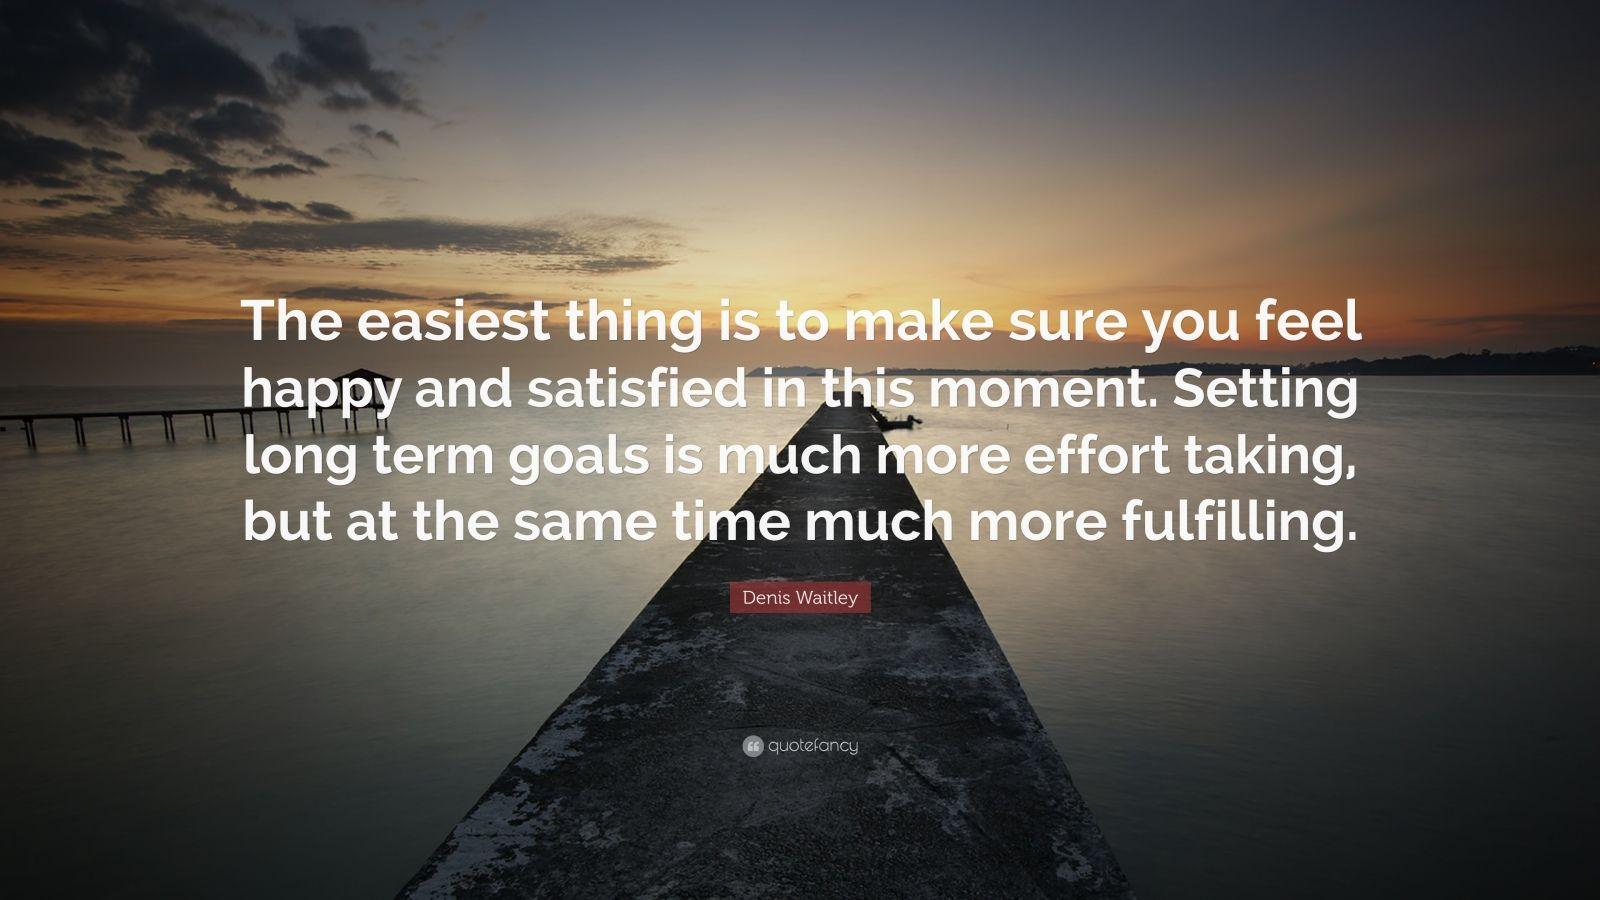 """Denis Waitley Quote: """"The easiest thing is to make sure you feel happy and satisfied in this moment. Setting long term goals is much more effort taking, but at the same time much more fulfilling."""""""